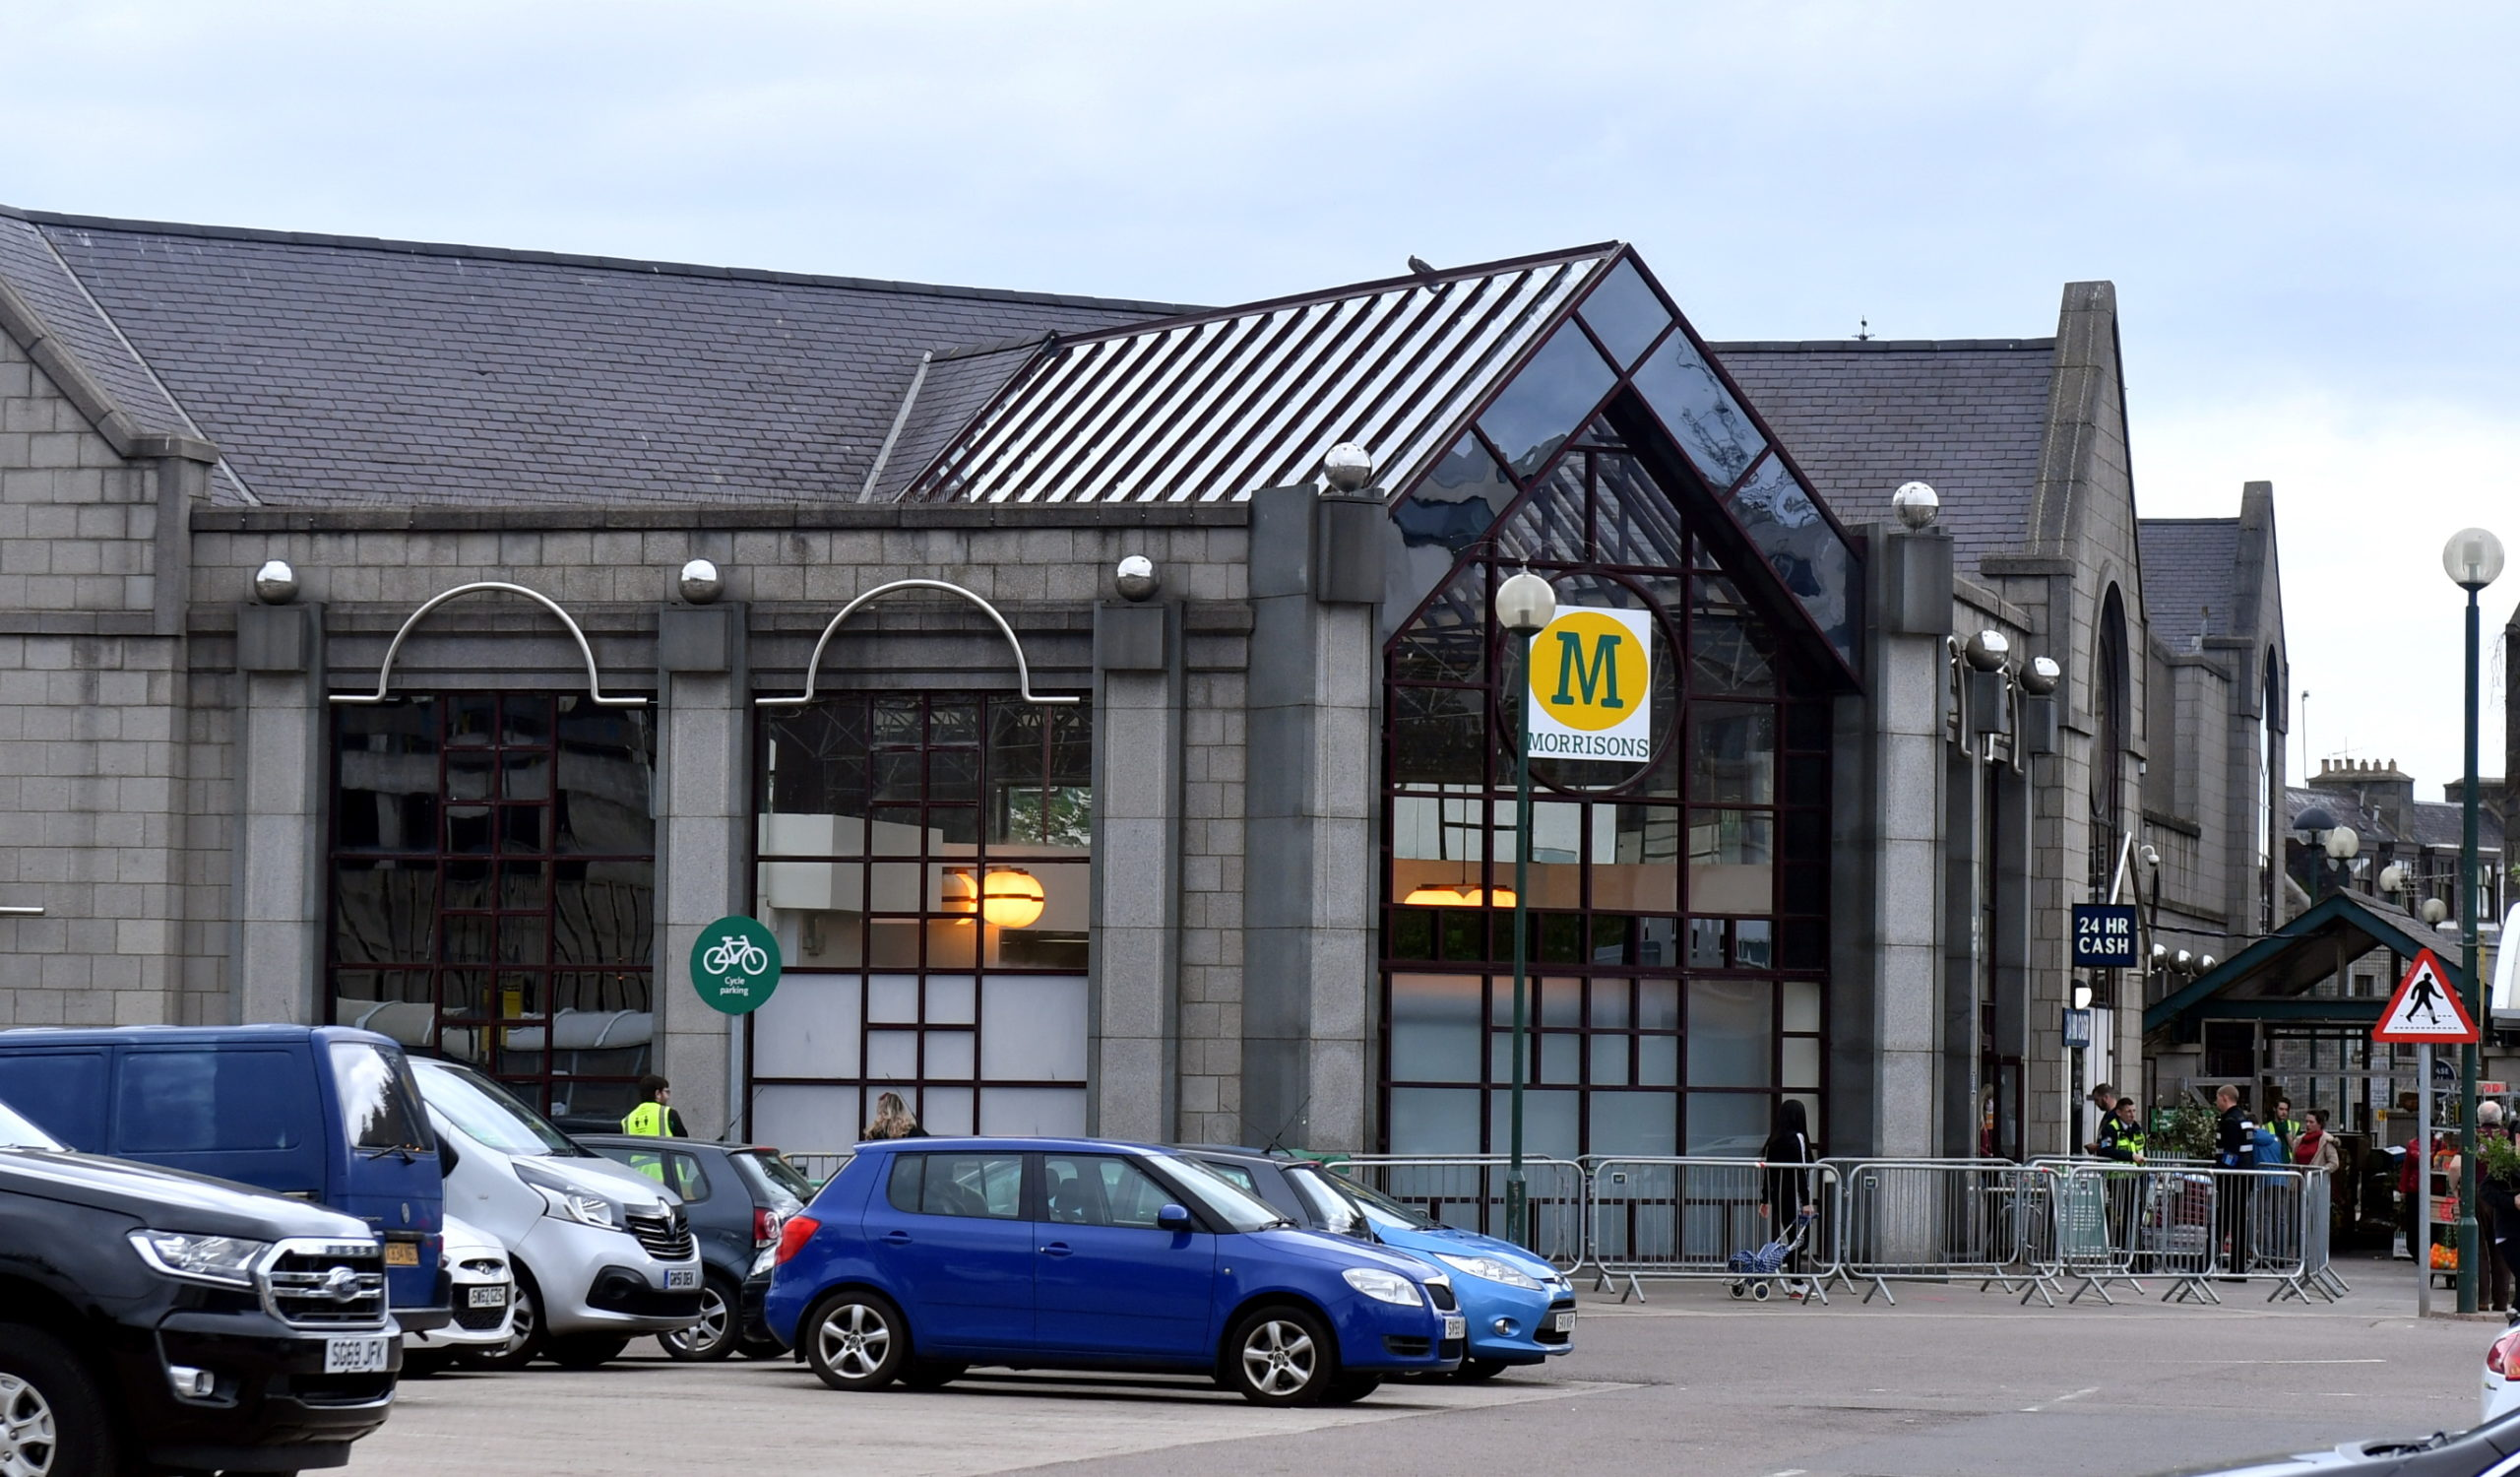 The alleged incident happened at Morrisons on King Street.